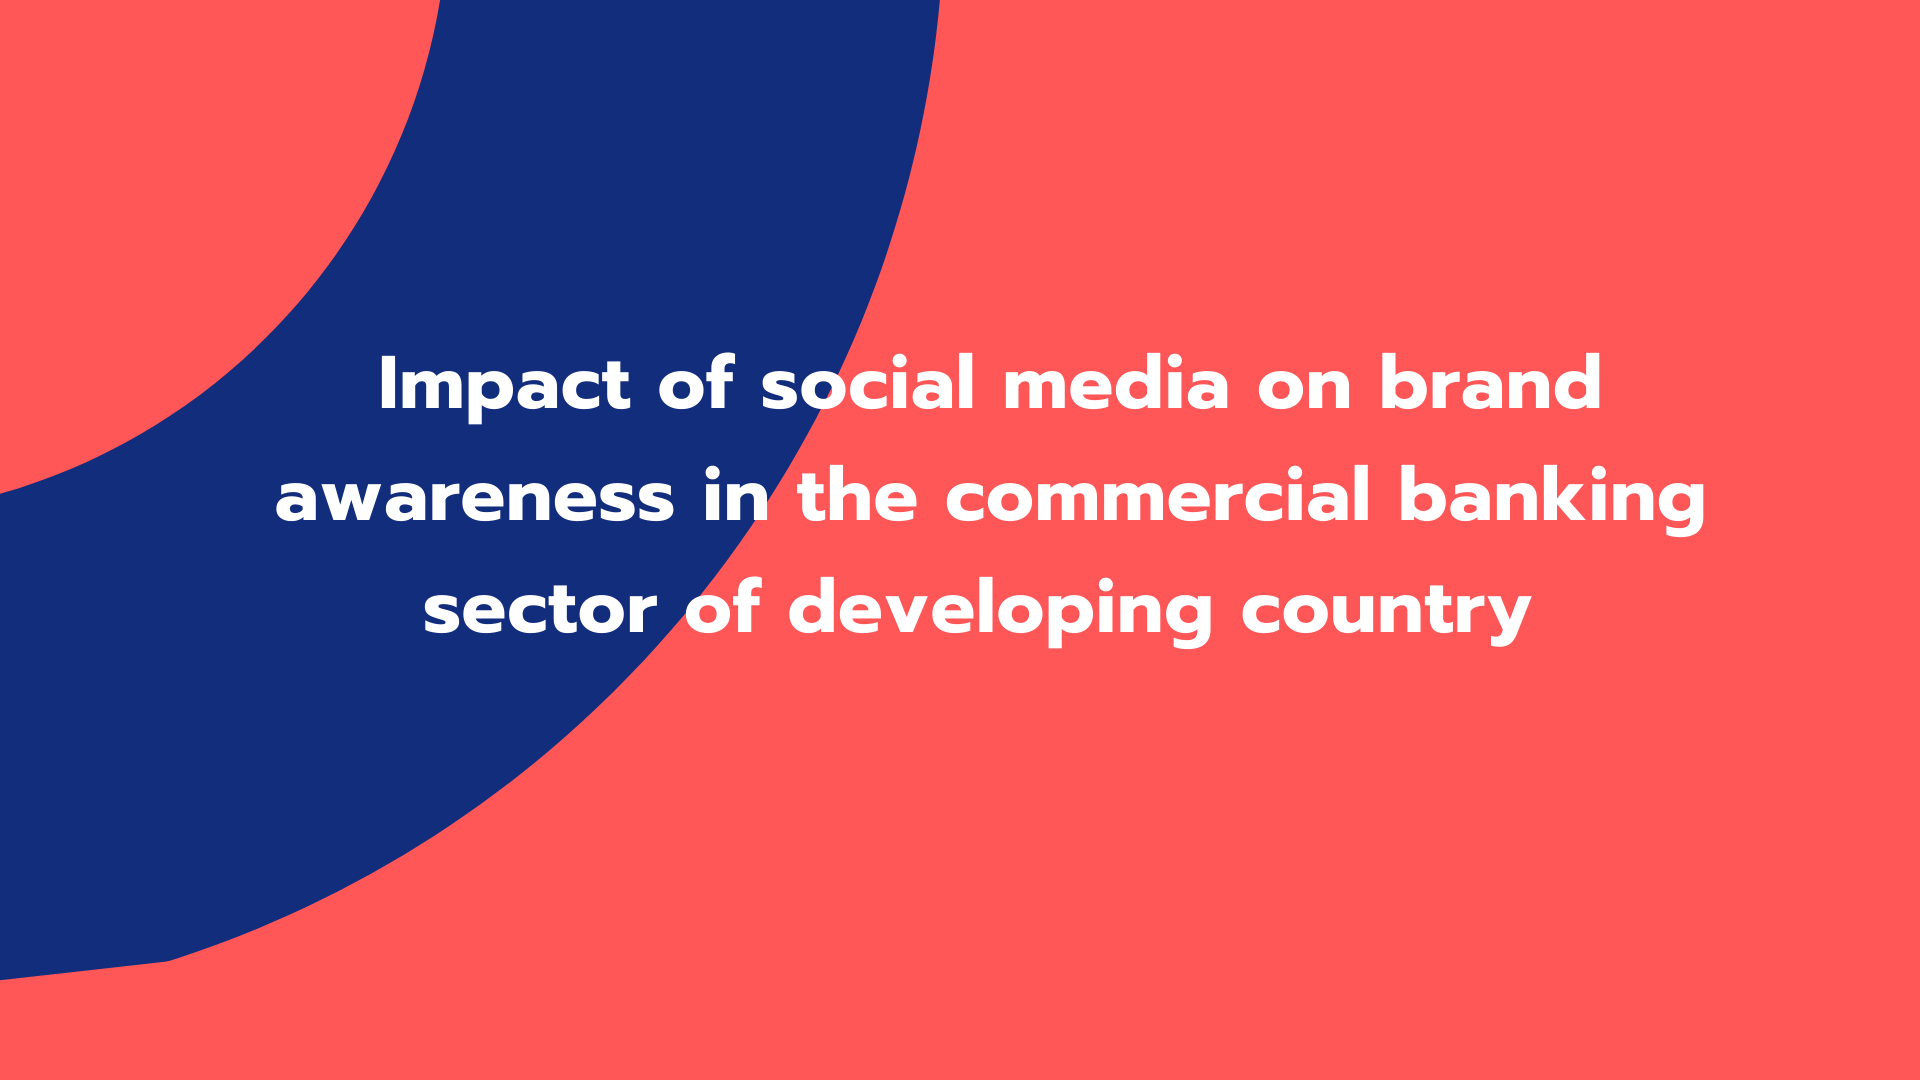 Impact of social media on brand awareness in the commercial banking sector of developing country